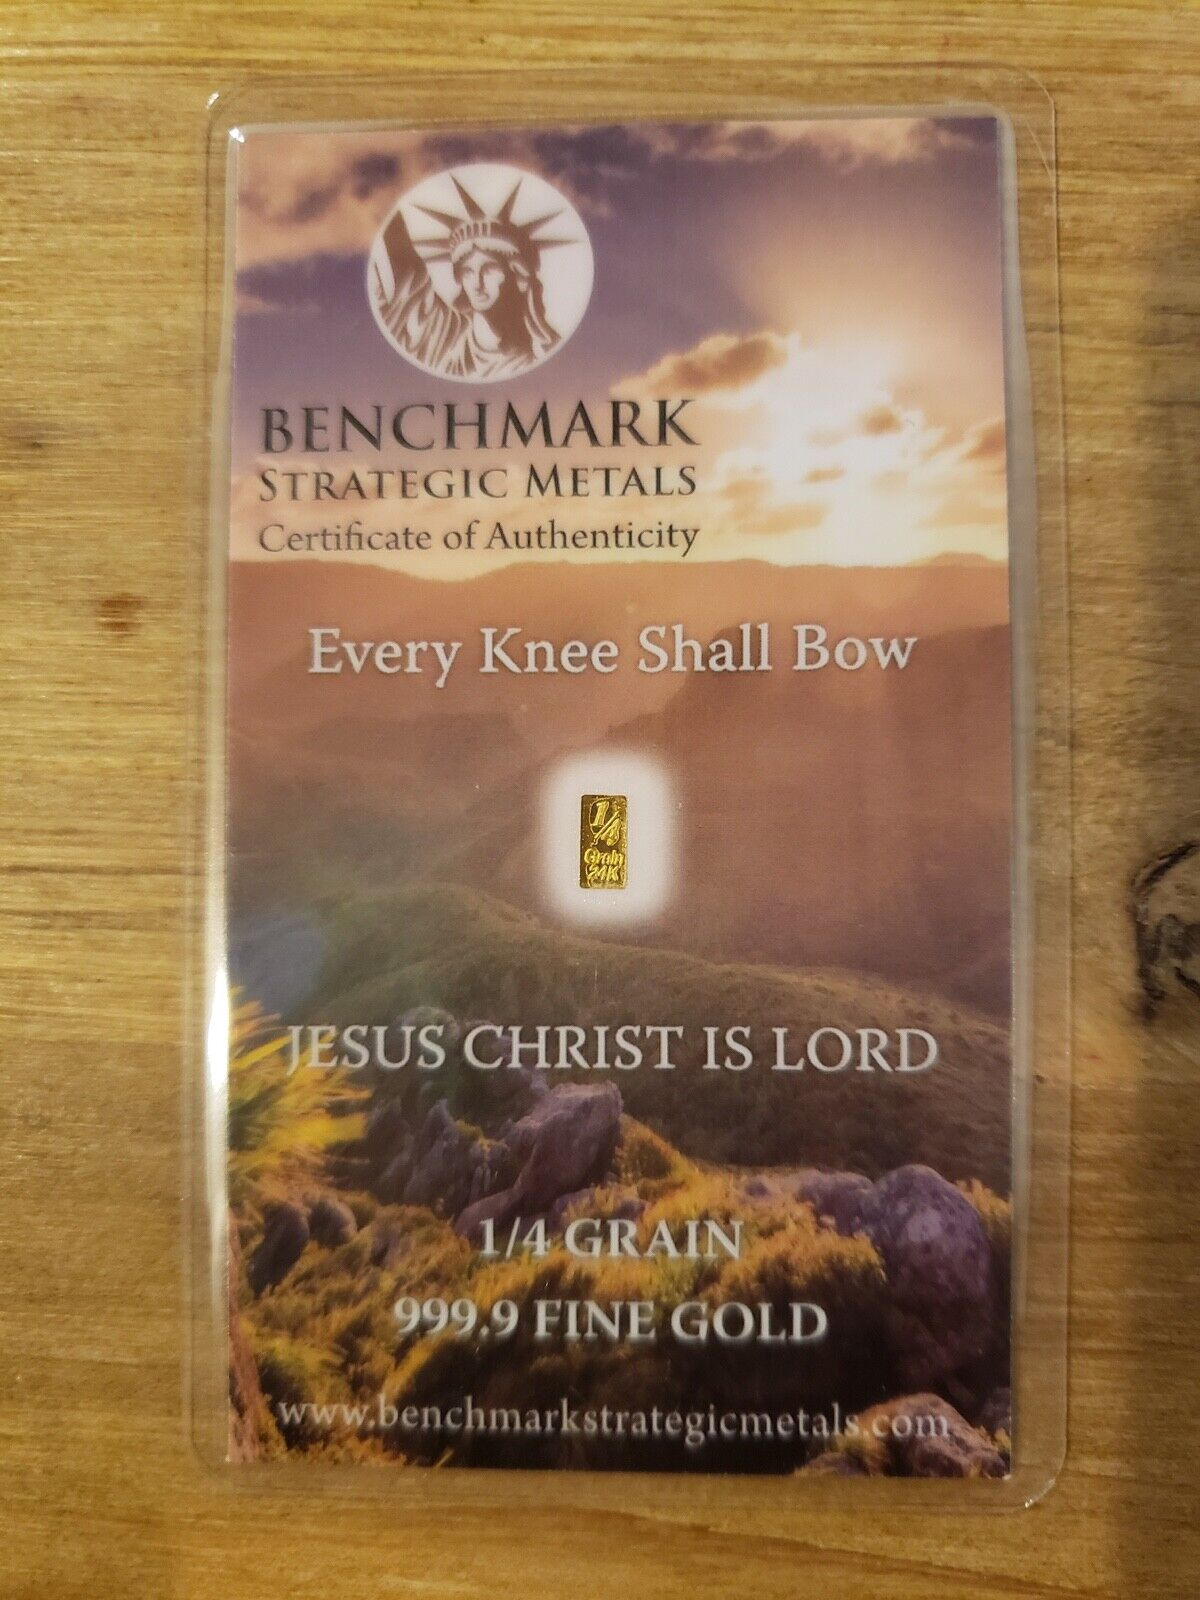 1/60 GRAM 24K PURE GOLD 999 FINE BENCHMARK STRATEGIC METALS JESUS CHRIST IS LORD